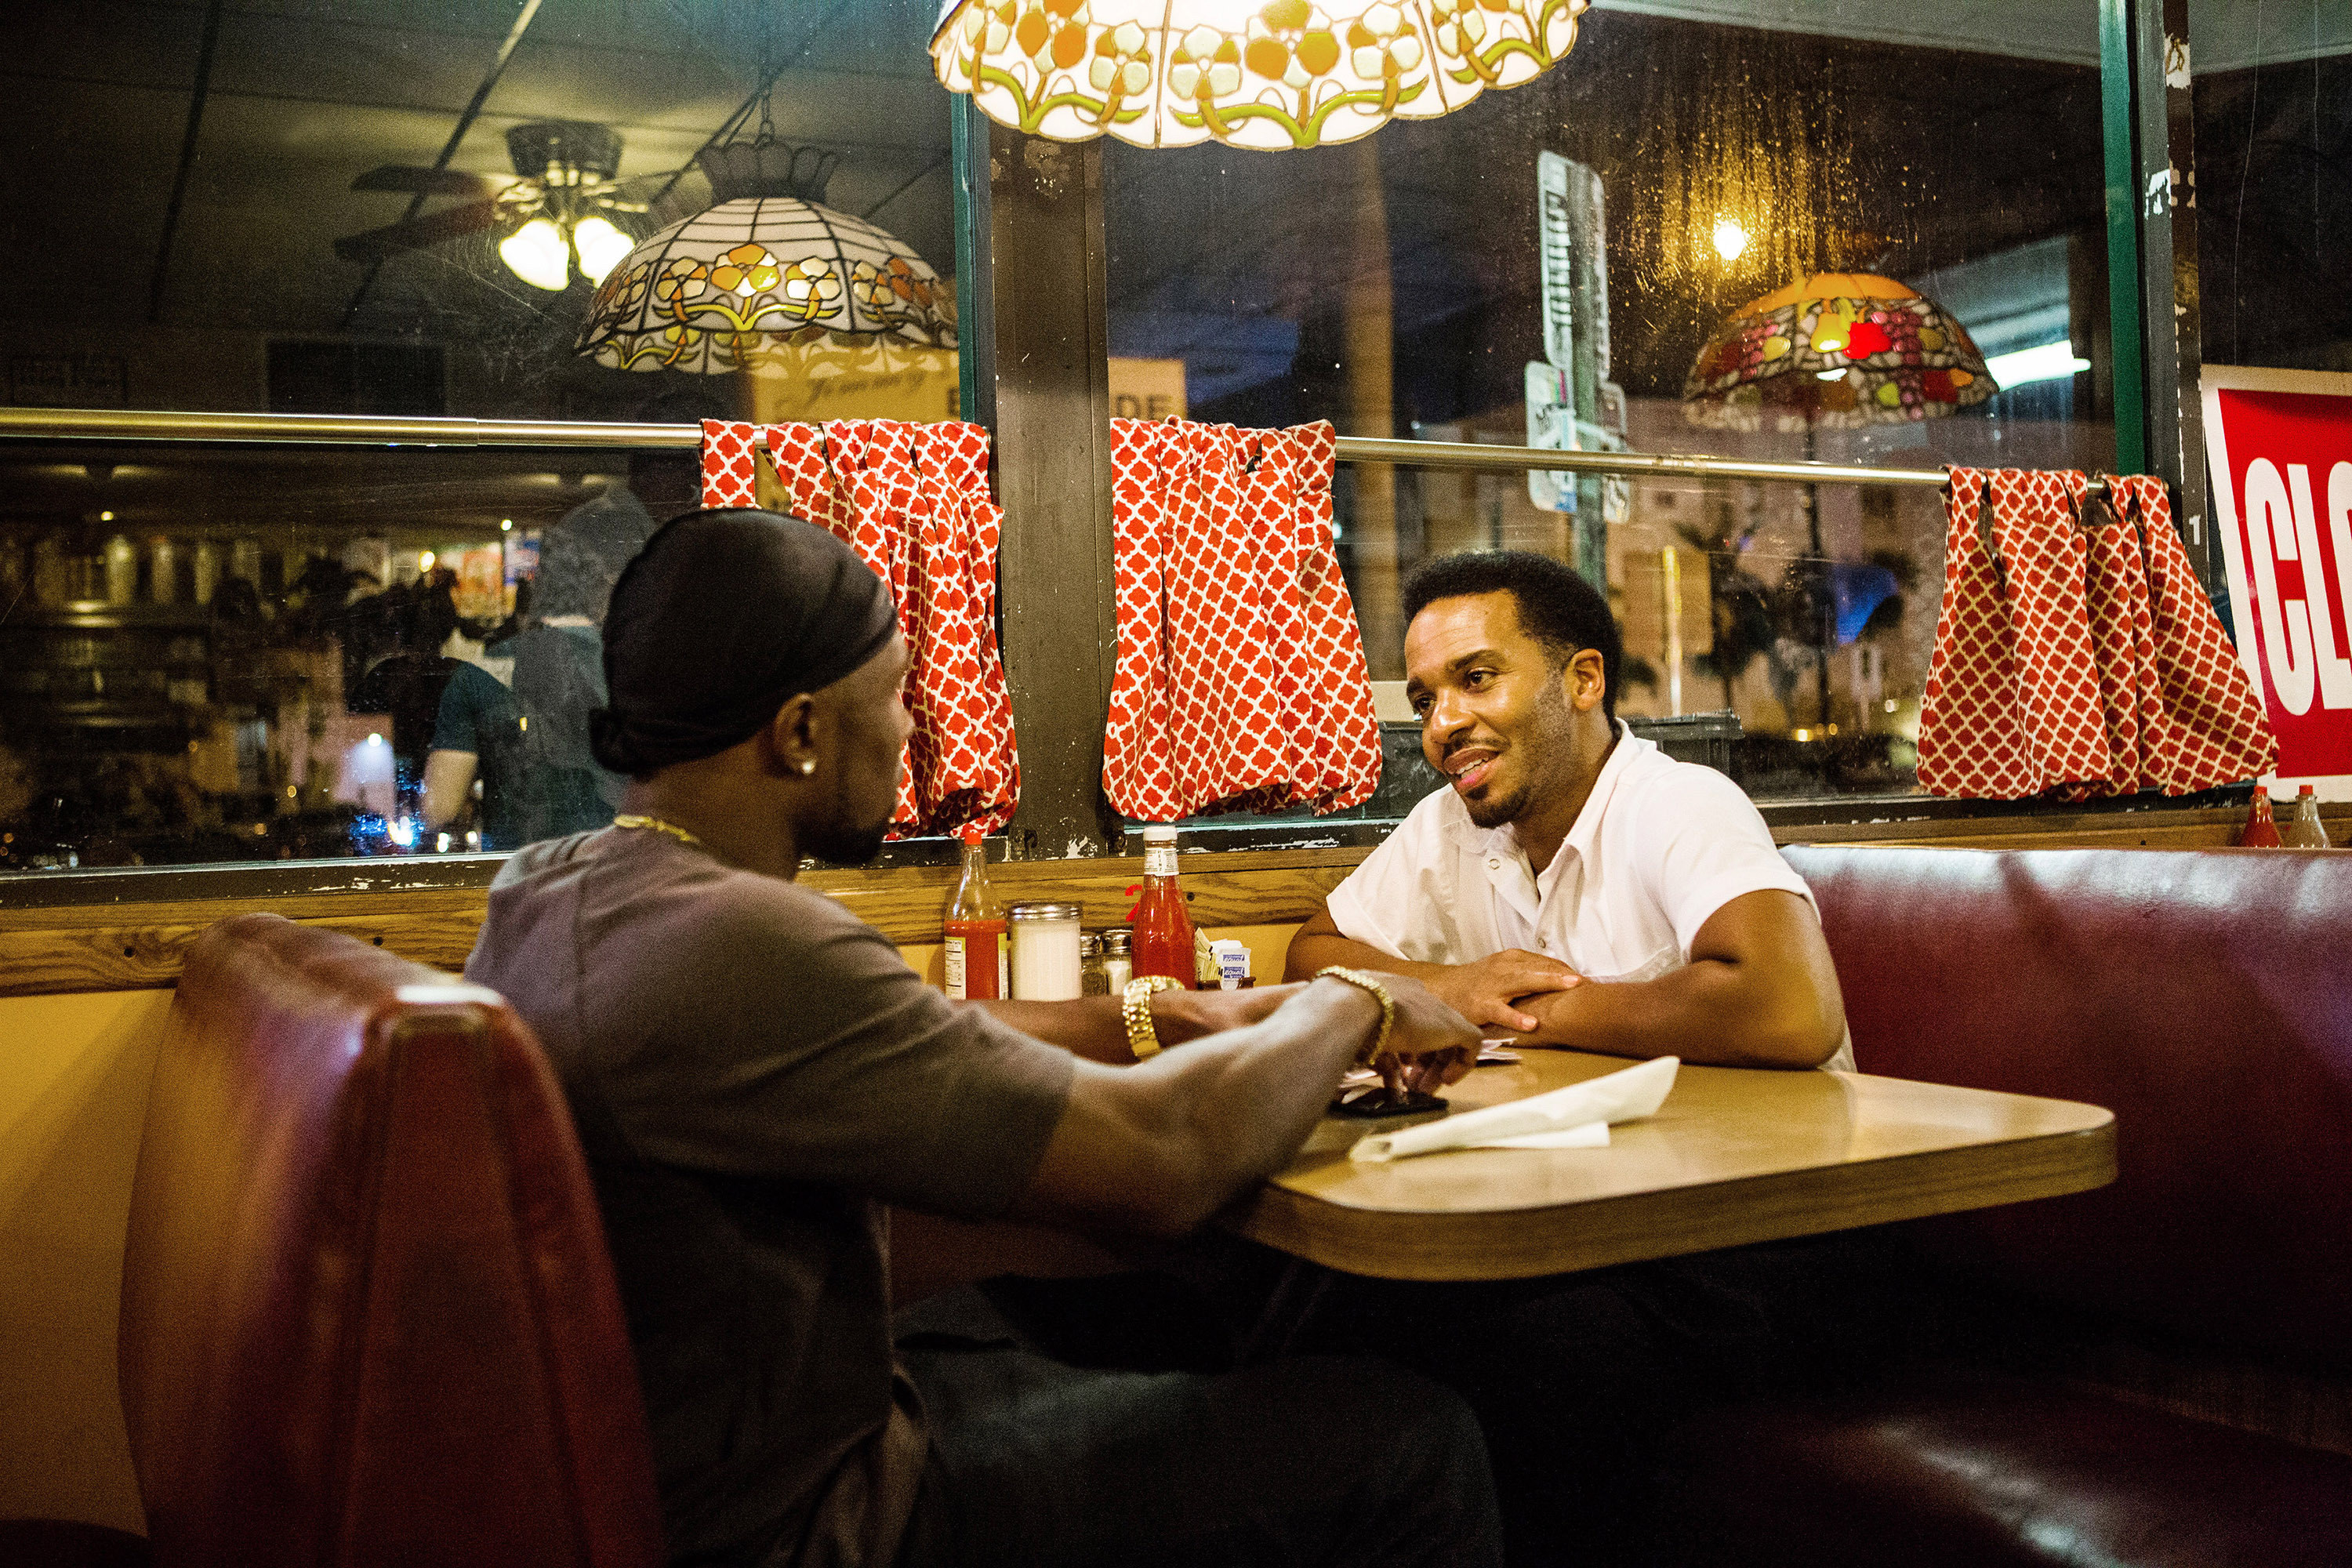 Trevante Rhodes sits across from Andre Holland in a diner